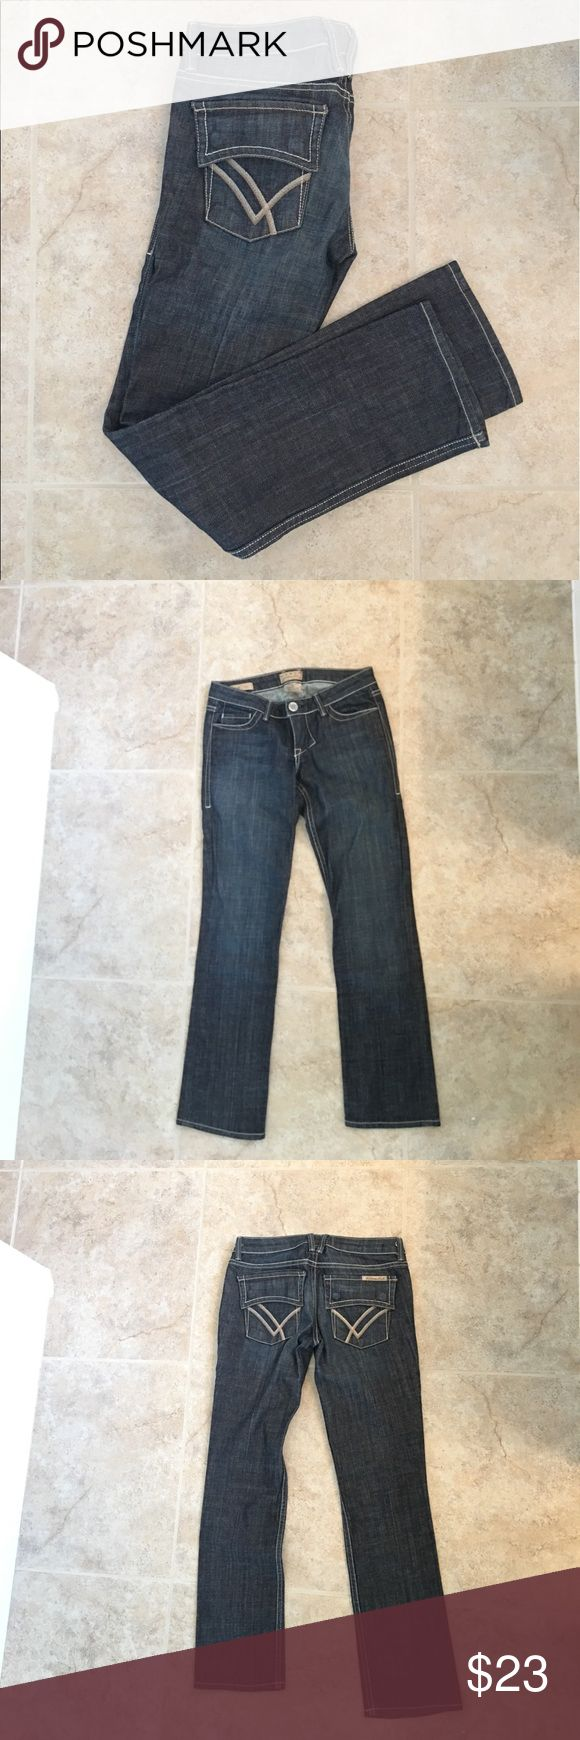 William Rast dark wash capri jean William Rast quality denim Capri jean w/embellished flap back pockets w/ snaps. Looks great rolled hem or straight. Excellent condition, almost never worn! William Rast Jeans Ankle & Cropped